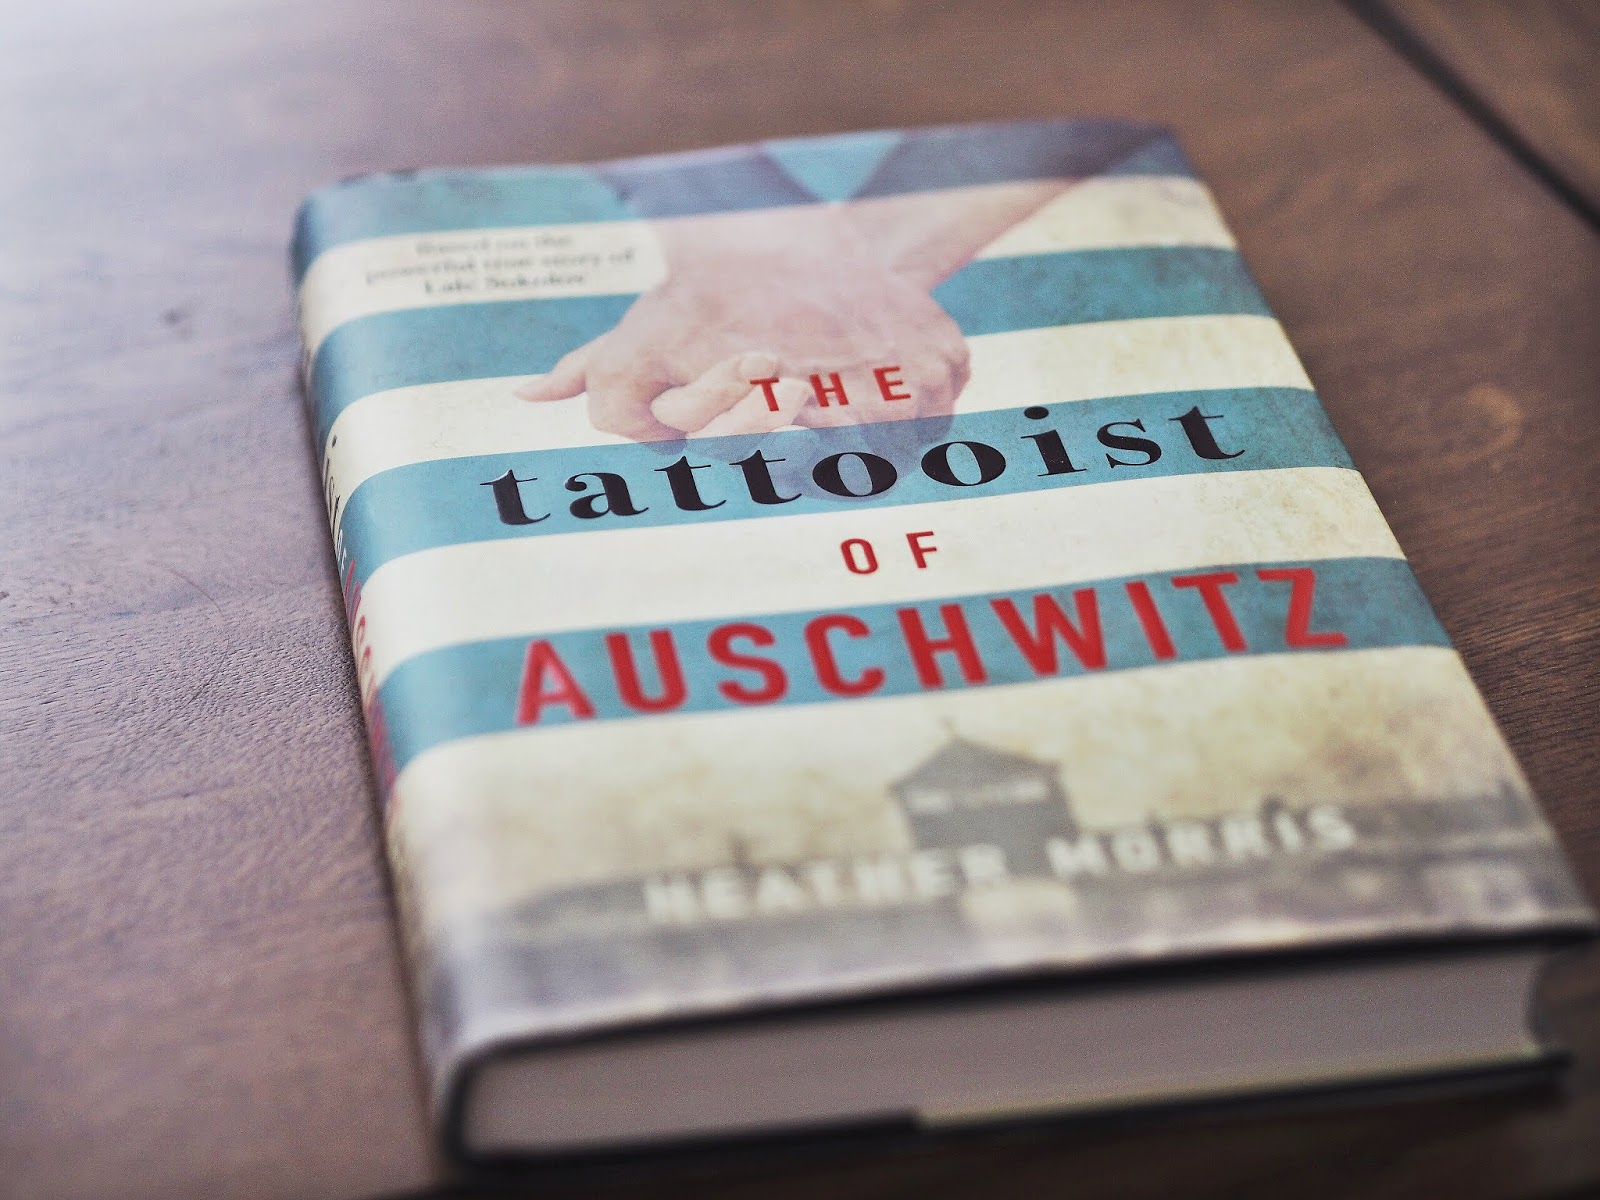 The Tattooist of Auschwitz by Heather Morris | Book Review